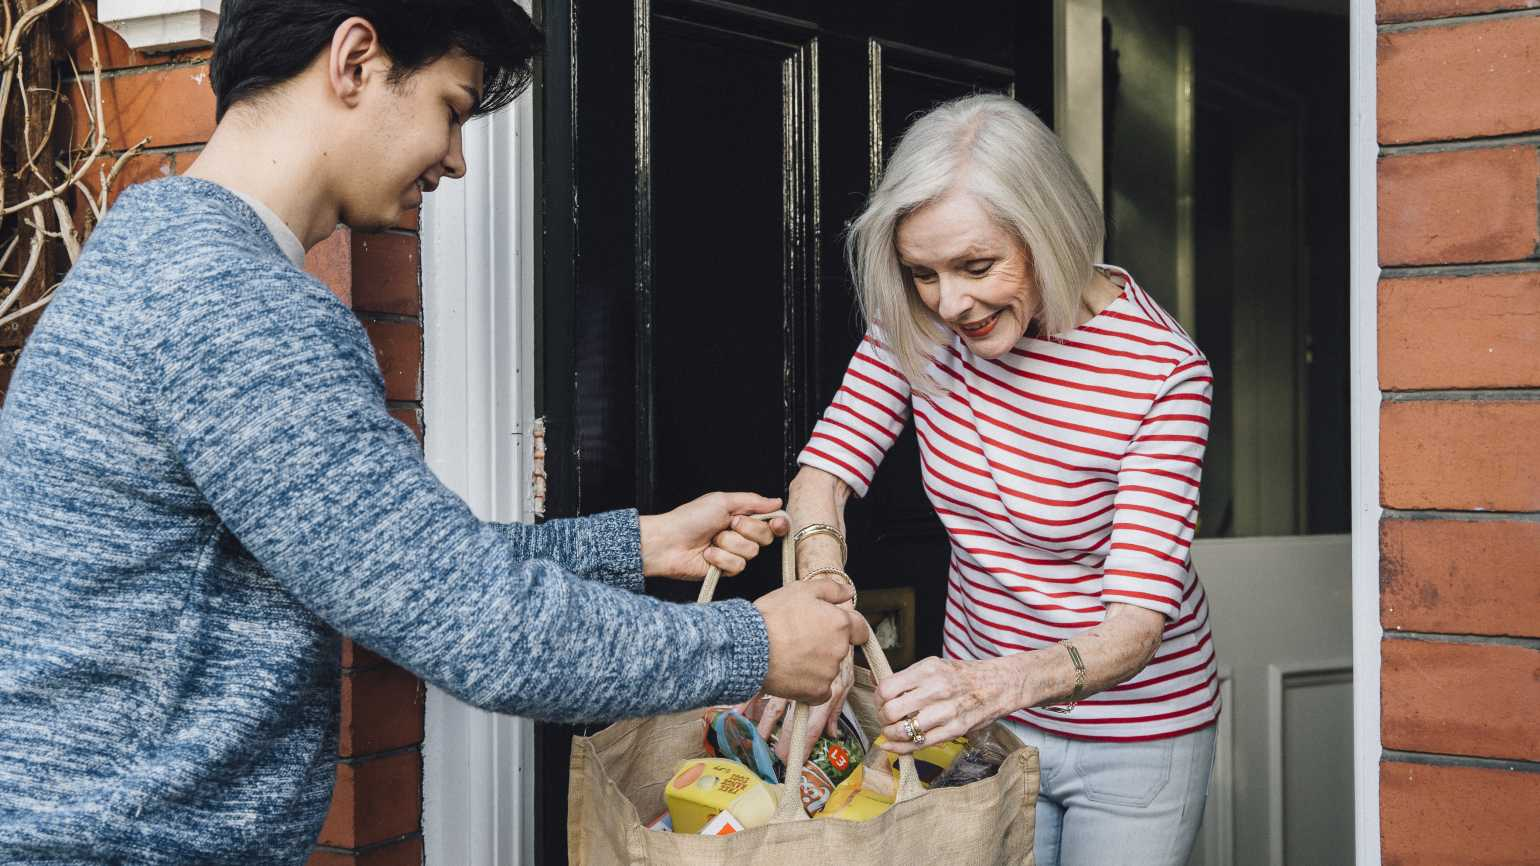 young boy helps older woman with bags, Getty Images